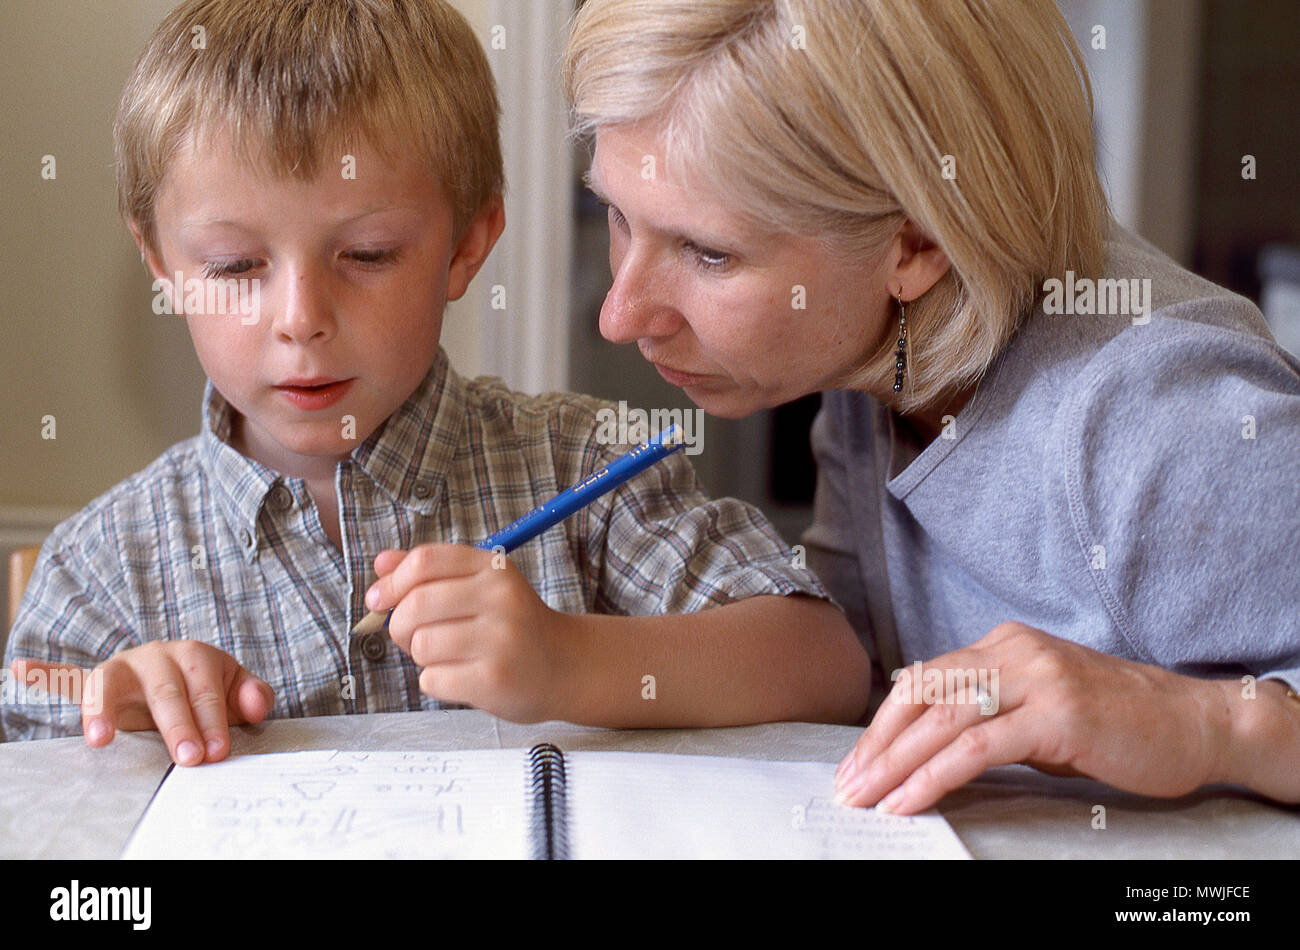 Five year old boy with his mother learning to write - Stock Image